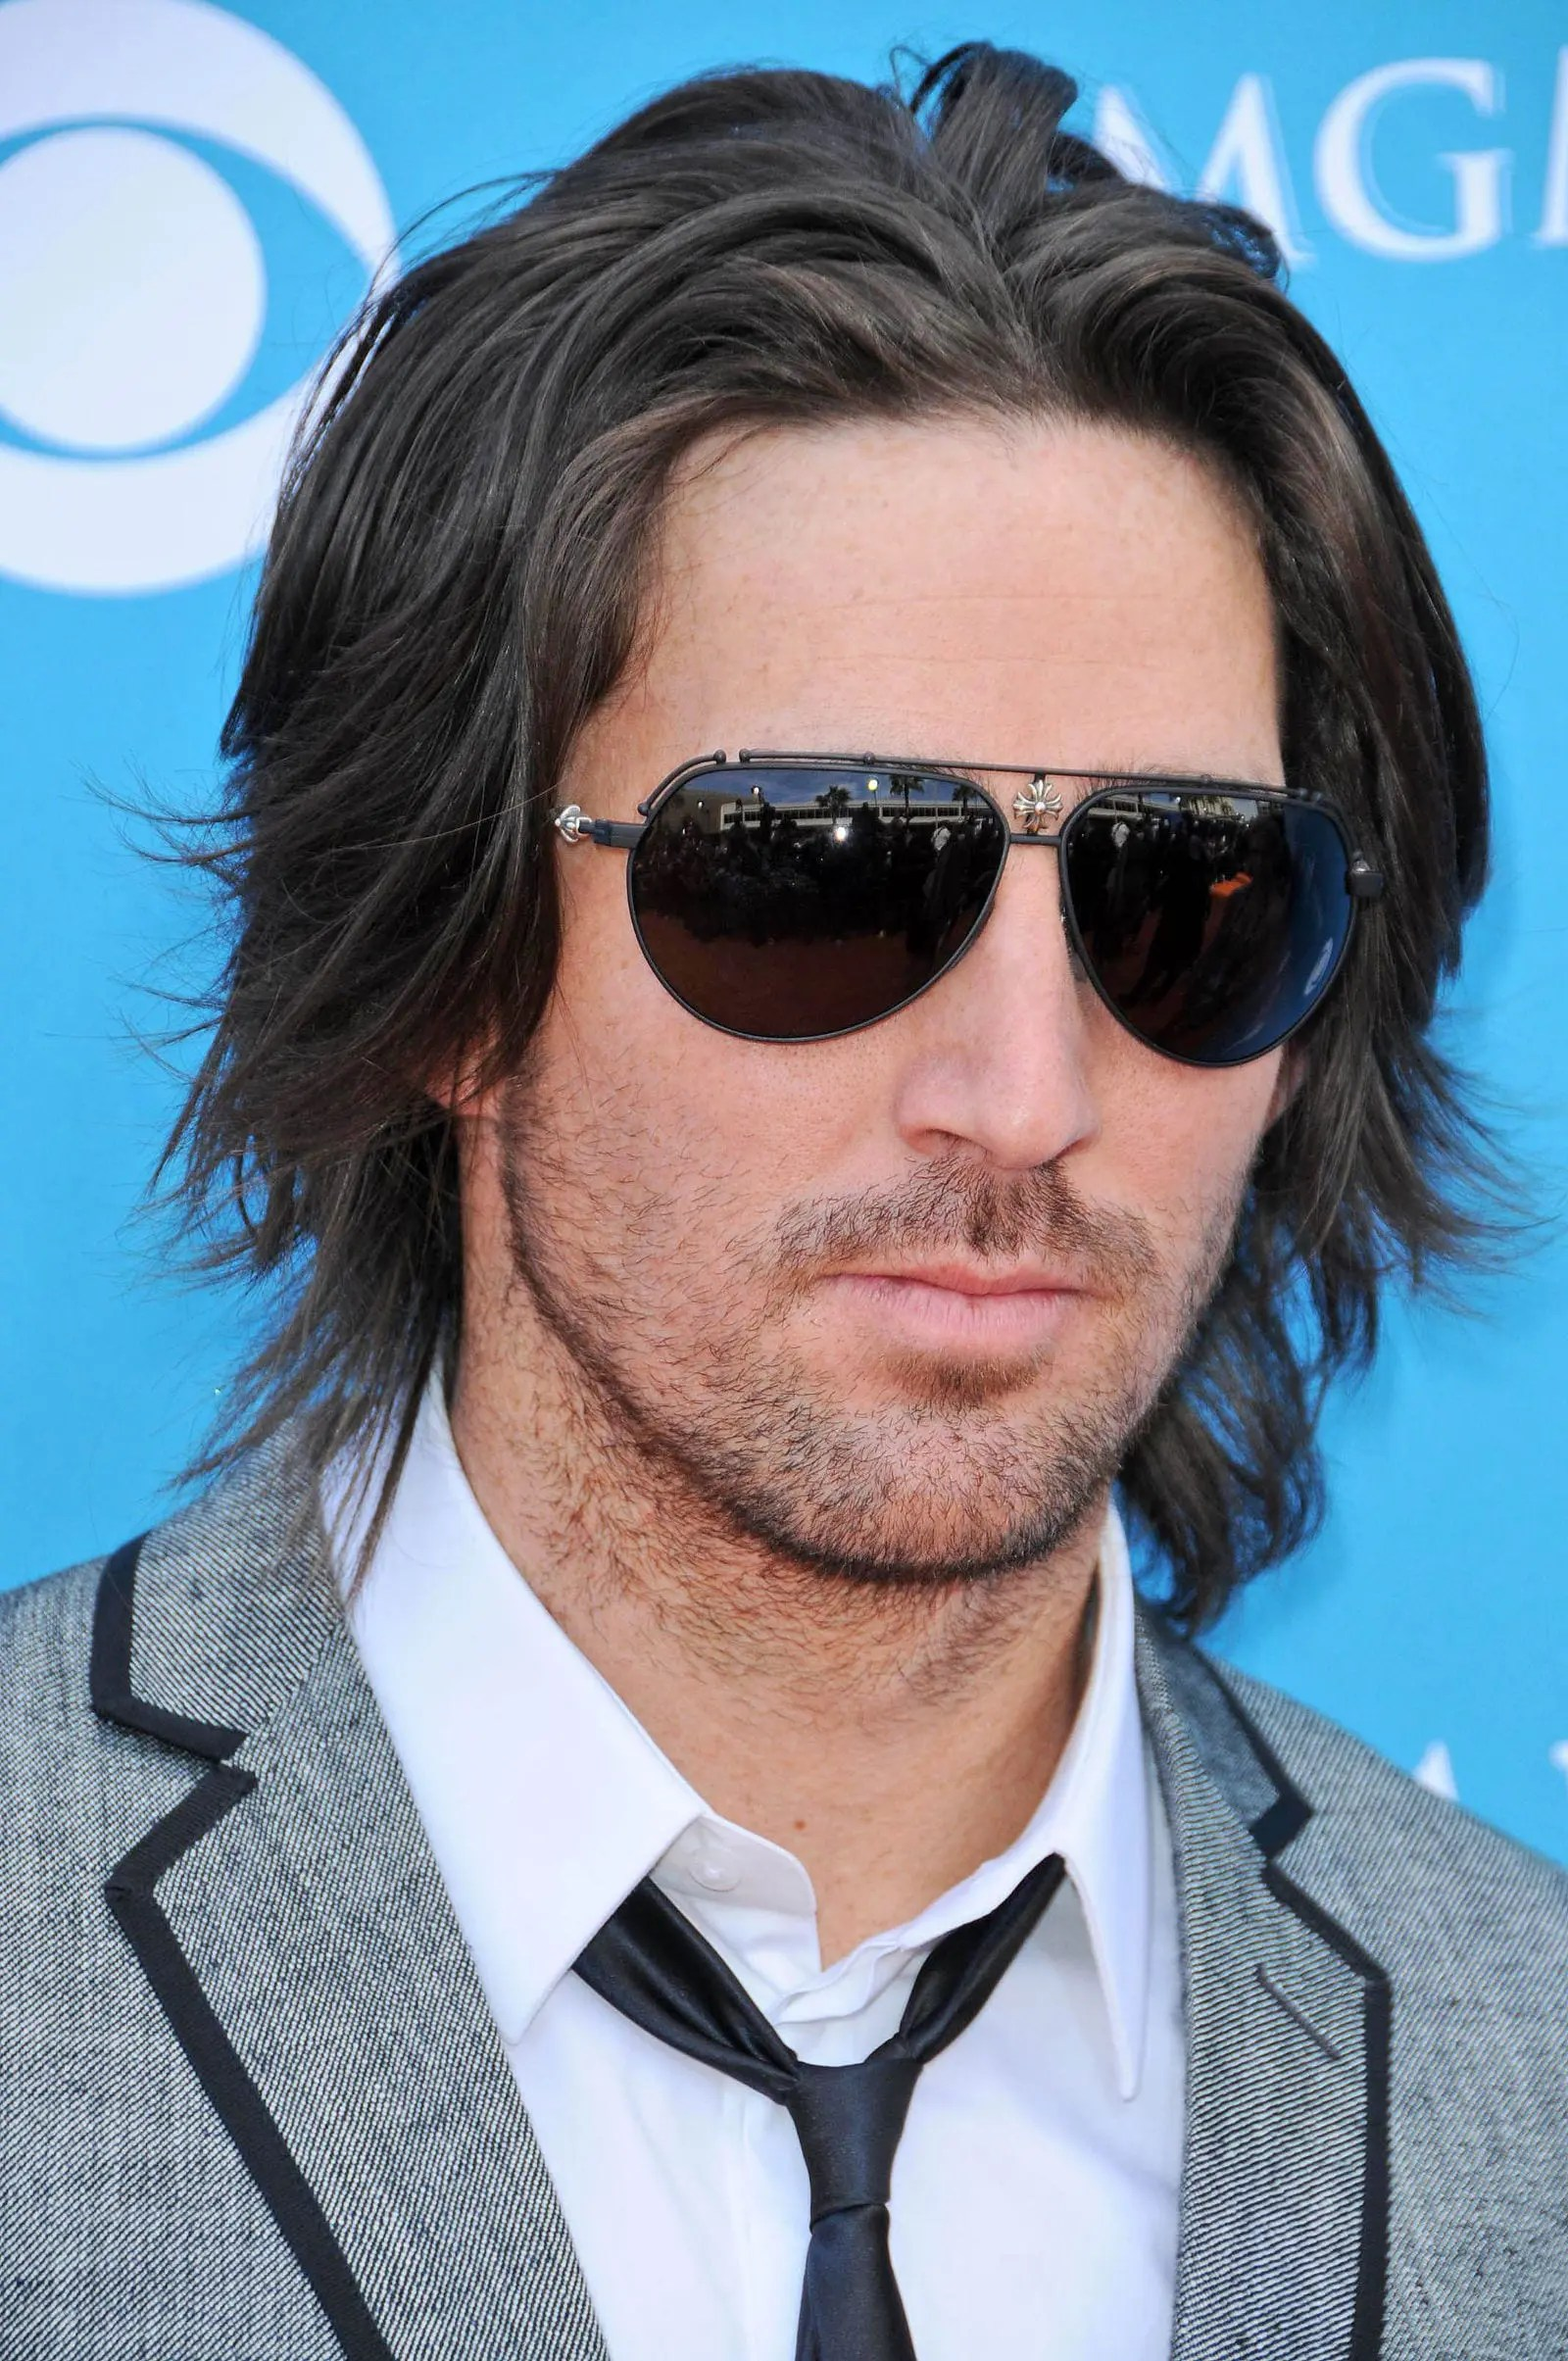 The Classic Flow Hairstyle is Back – Gallery